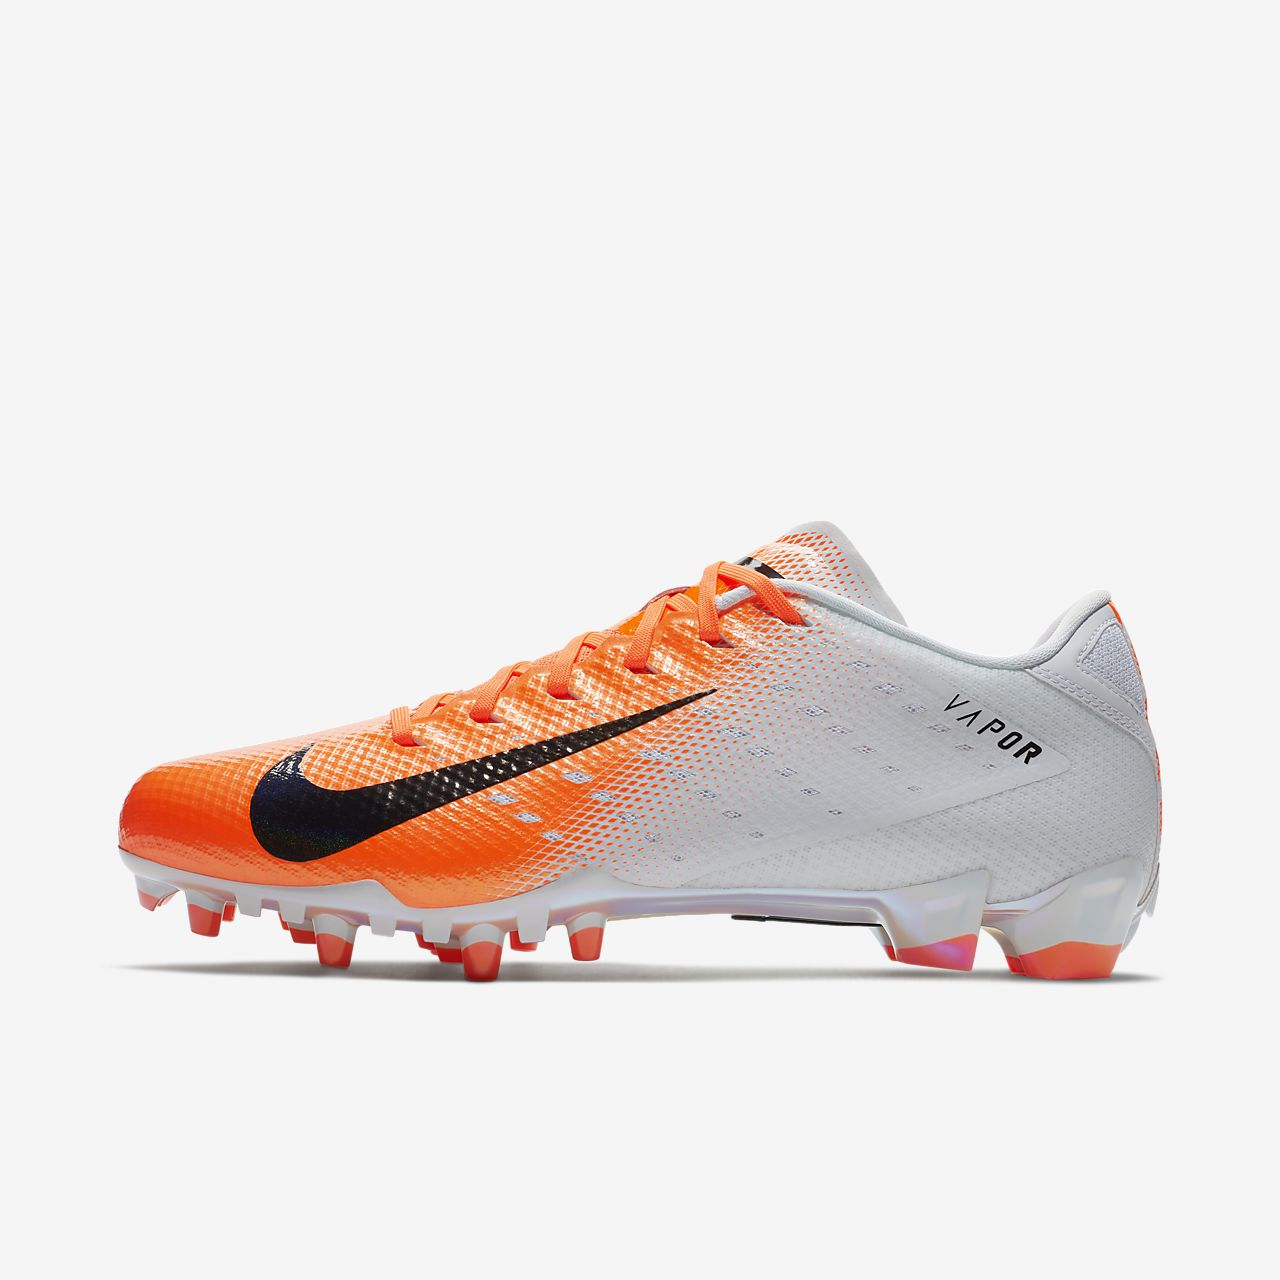 c66dd6625d5 white nike football cleats lebron high top shoes